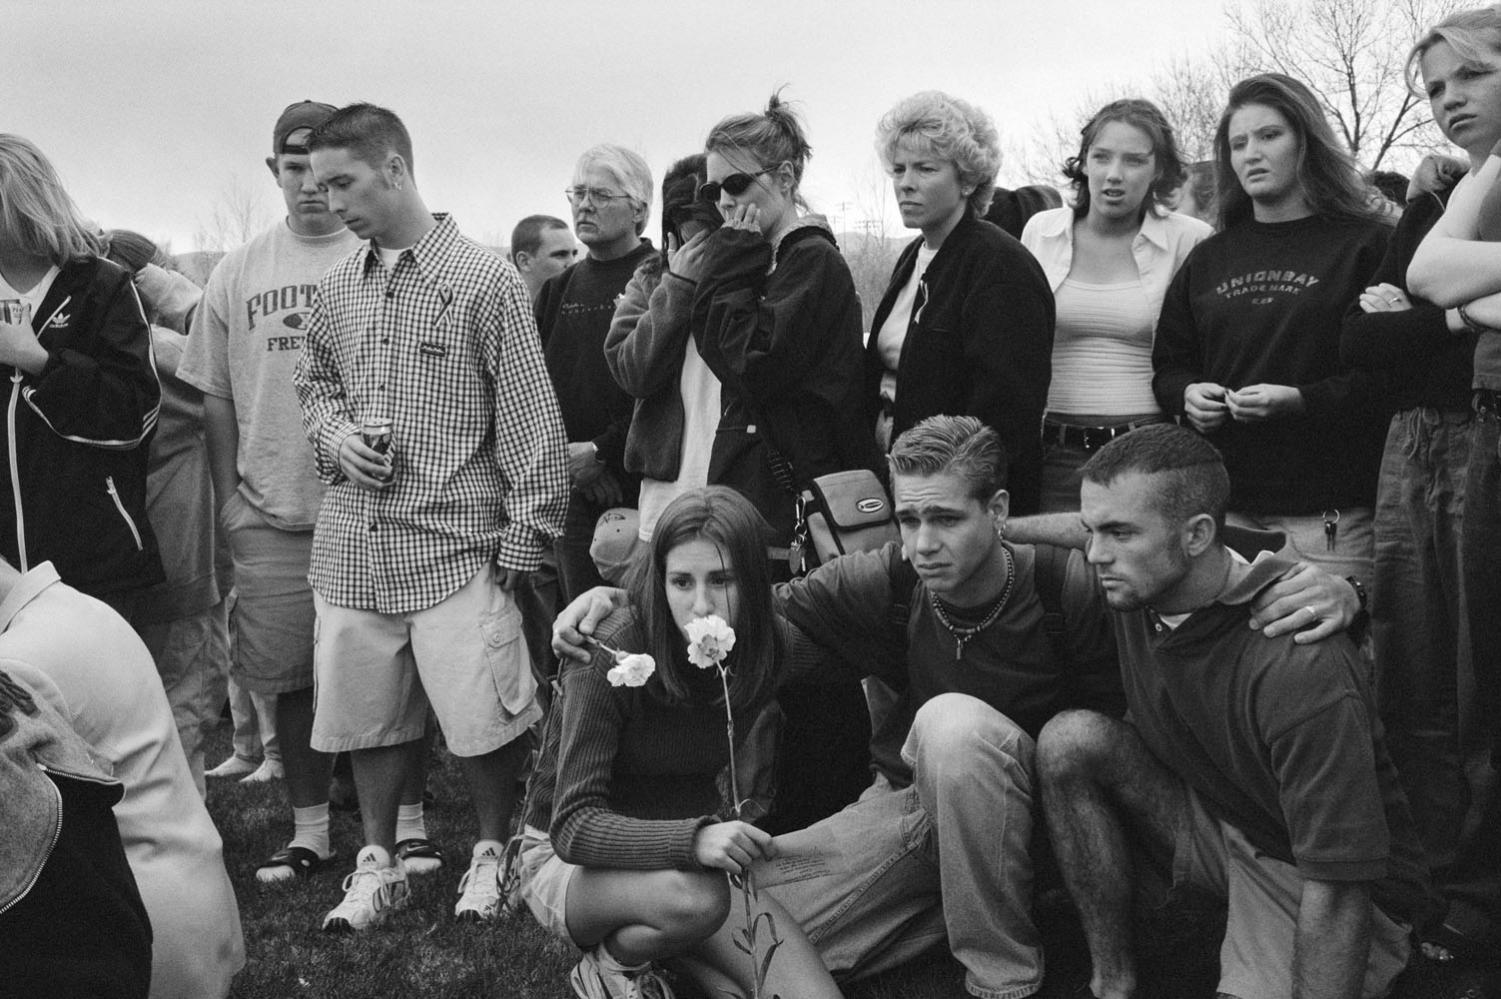 The day after the Columbine High School massacre, students gathered outside the school to remember their classmates.